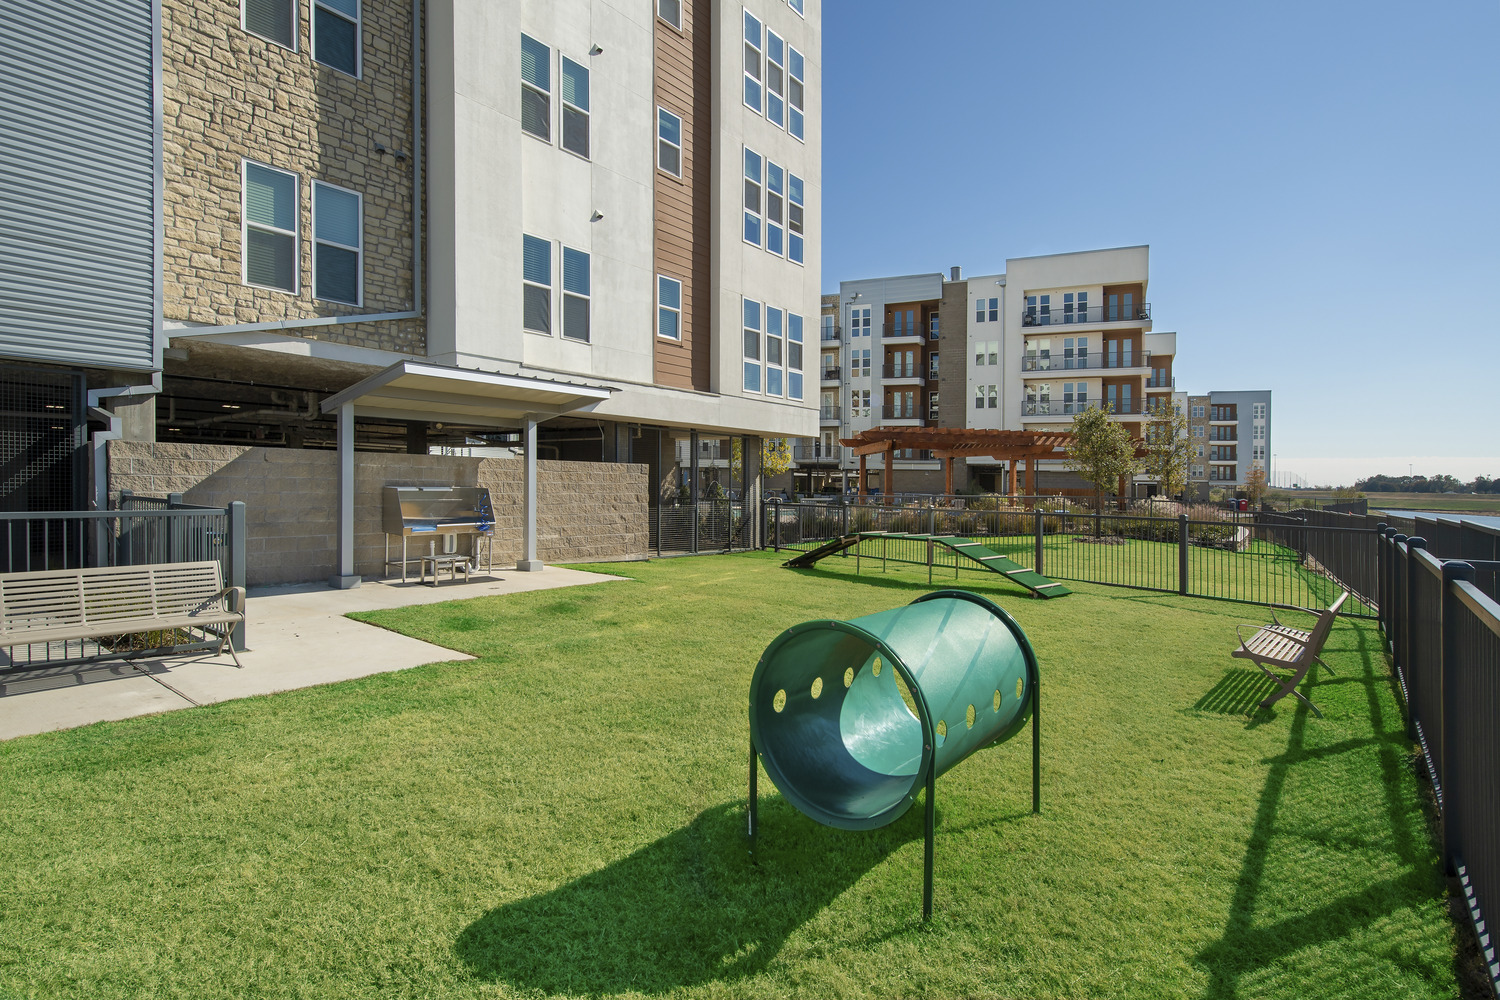 CBG builds The View of Fort Worth, a 300-Unit Apartment Community with Amenities in Fort Worth, TX - Image #6